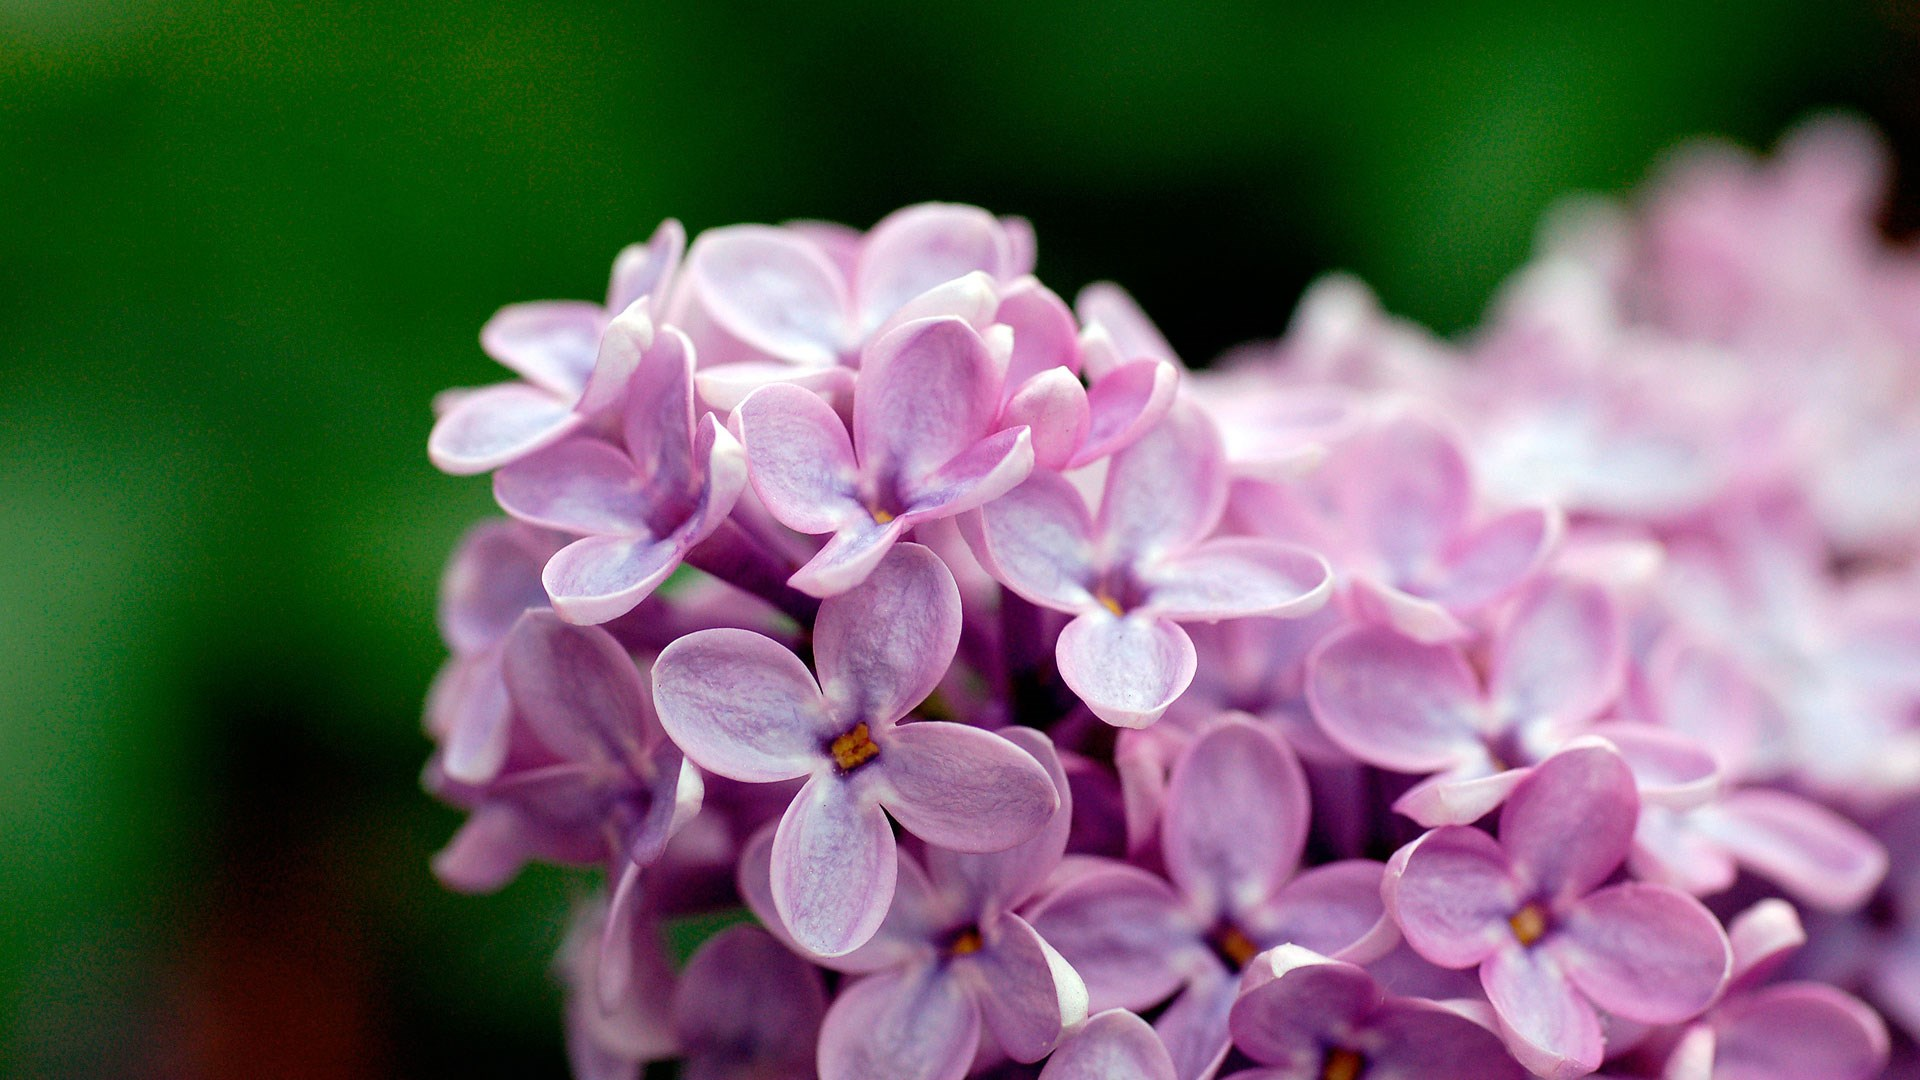 Light Purple Flowers 1080p - [1920 x 1080]